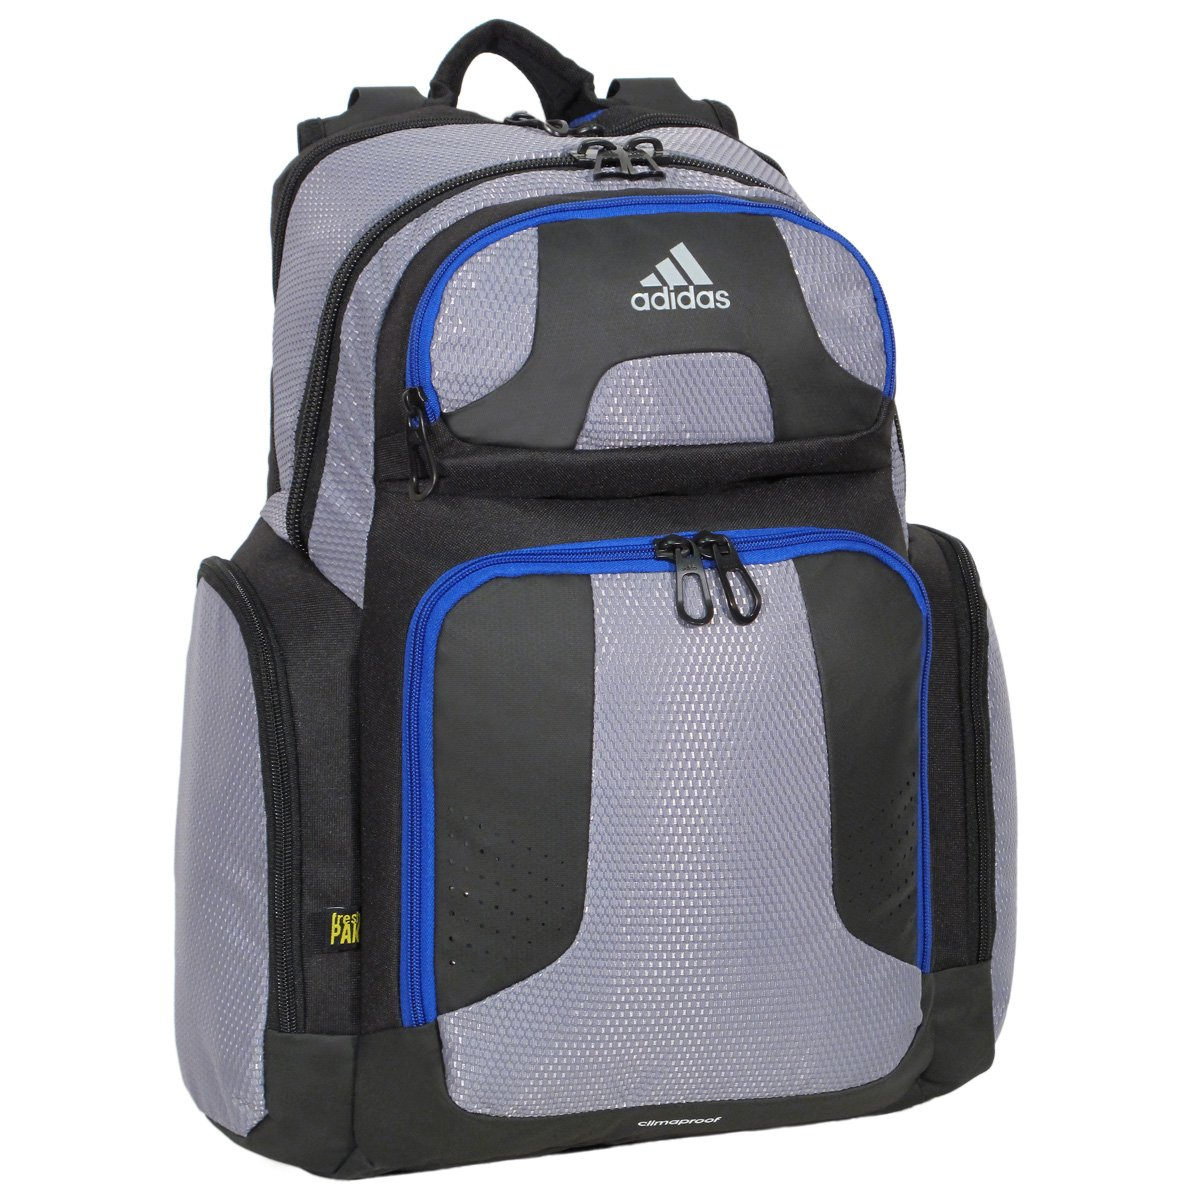 86f57efe40 Galleon - Adidas Climacool Strength Backpack